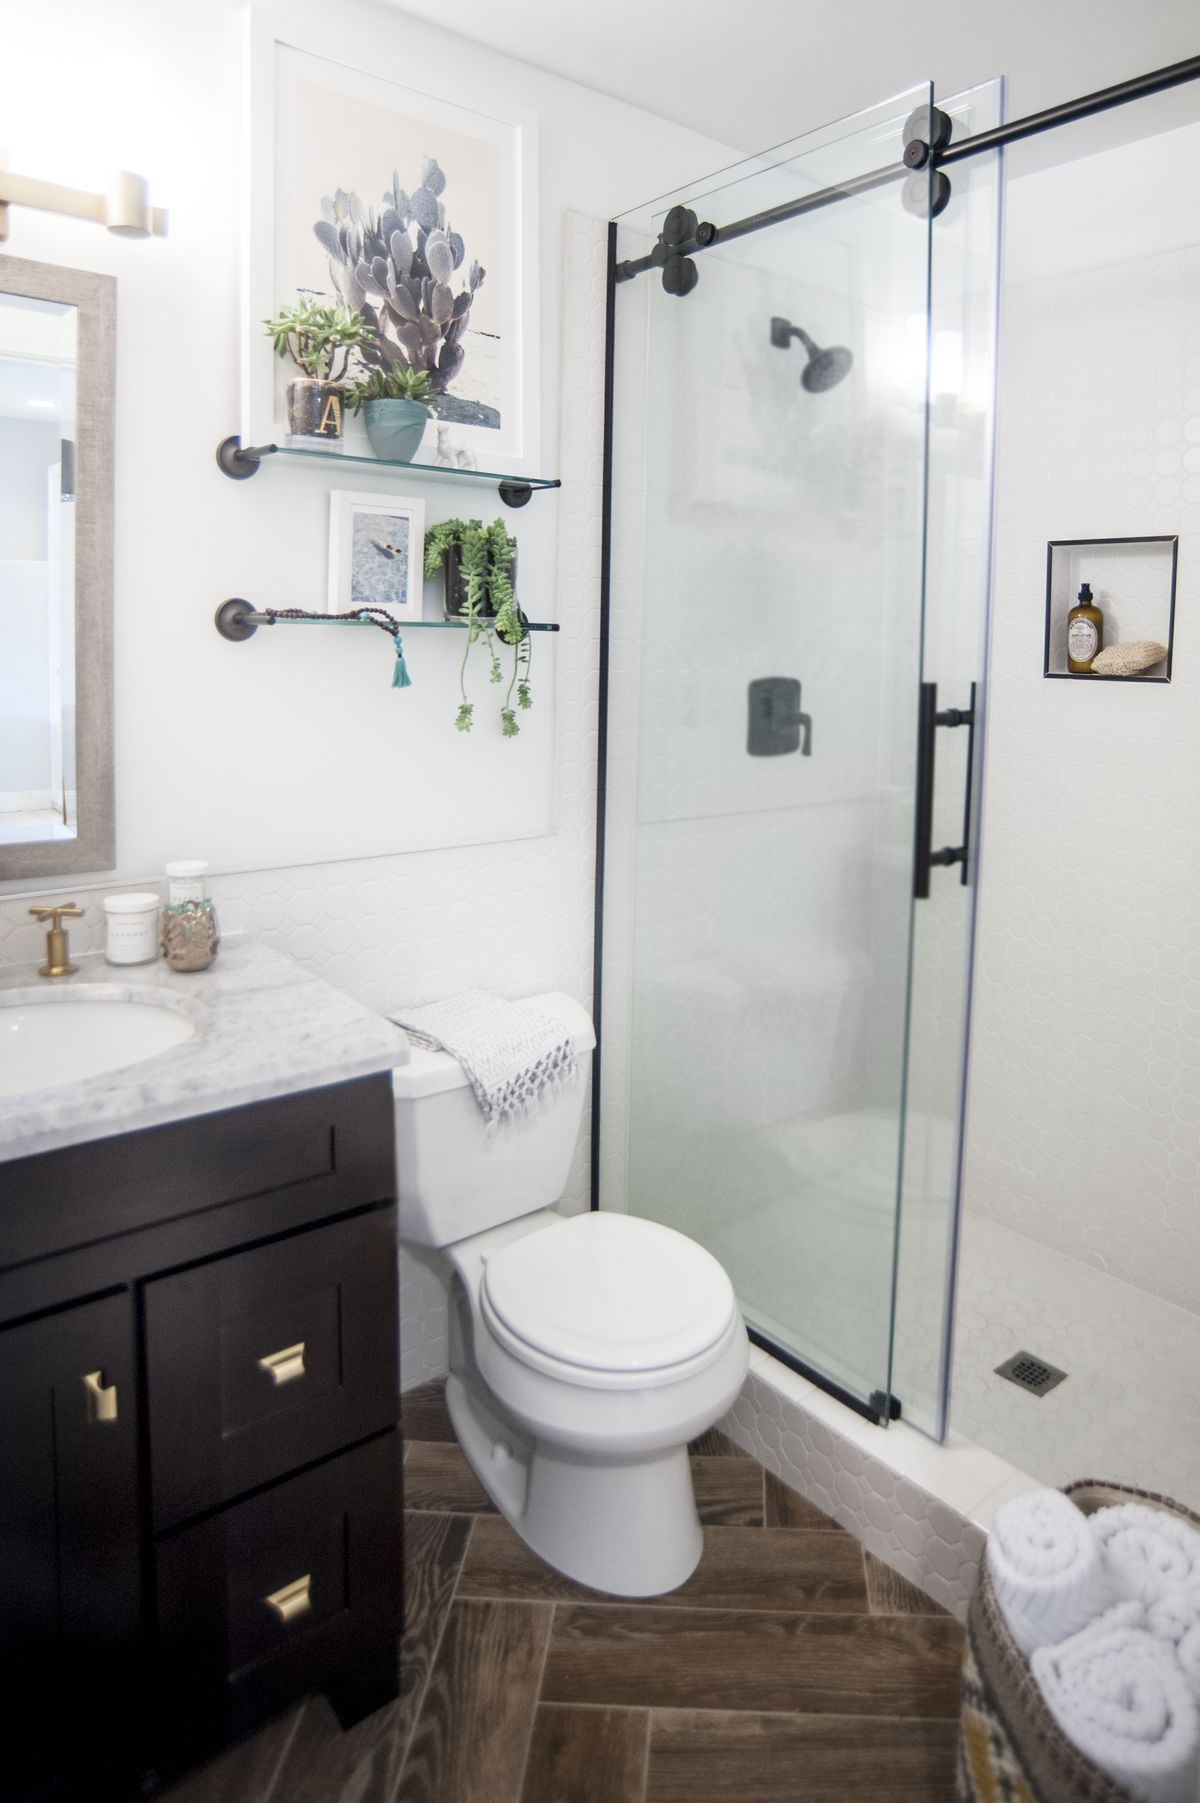 This Bathroom Renovation Tip Will Save You Time And Money With